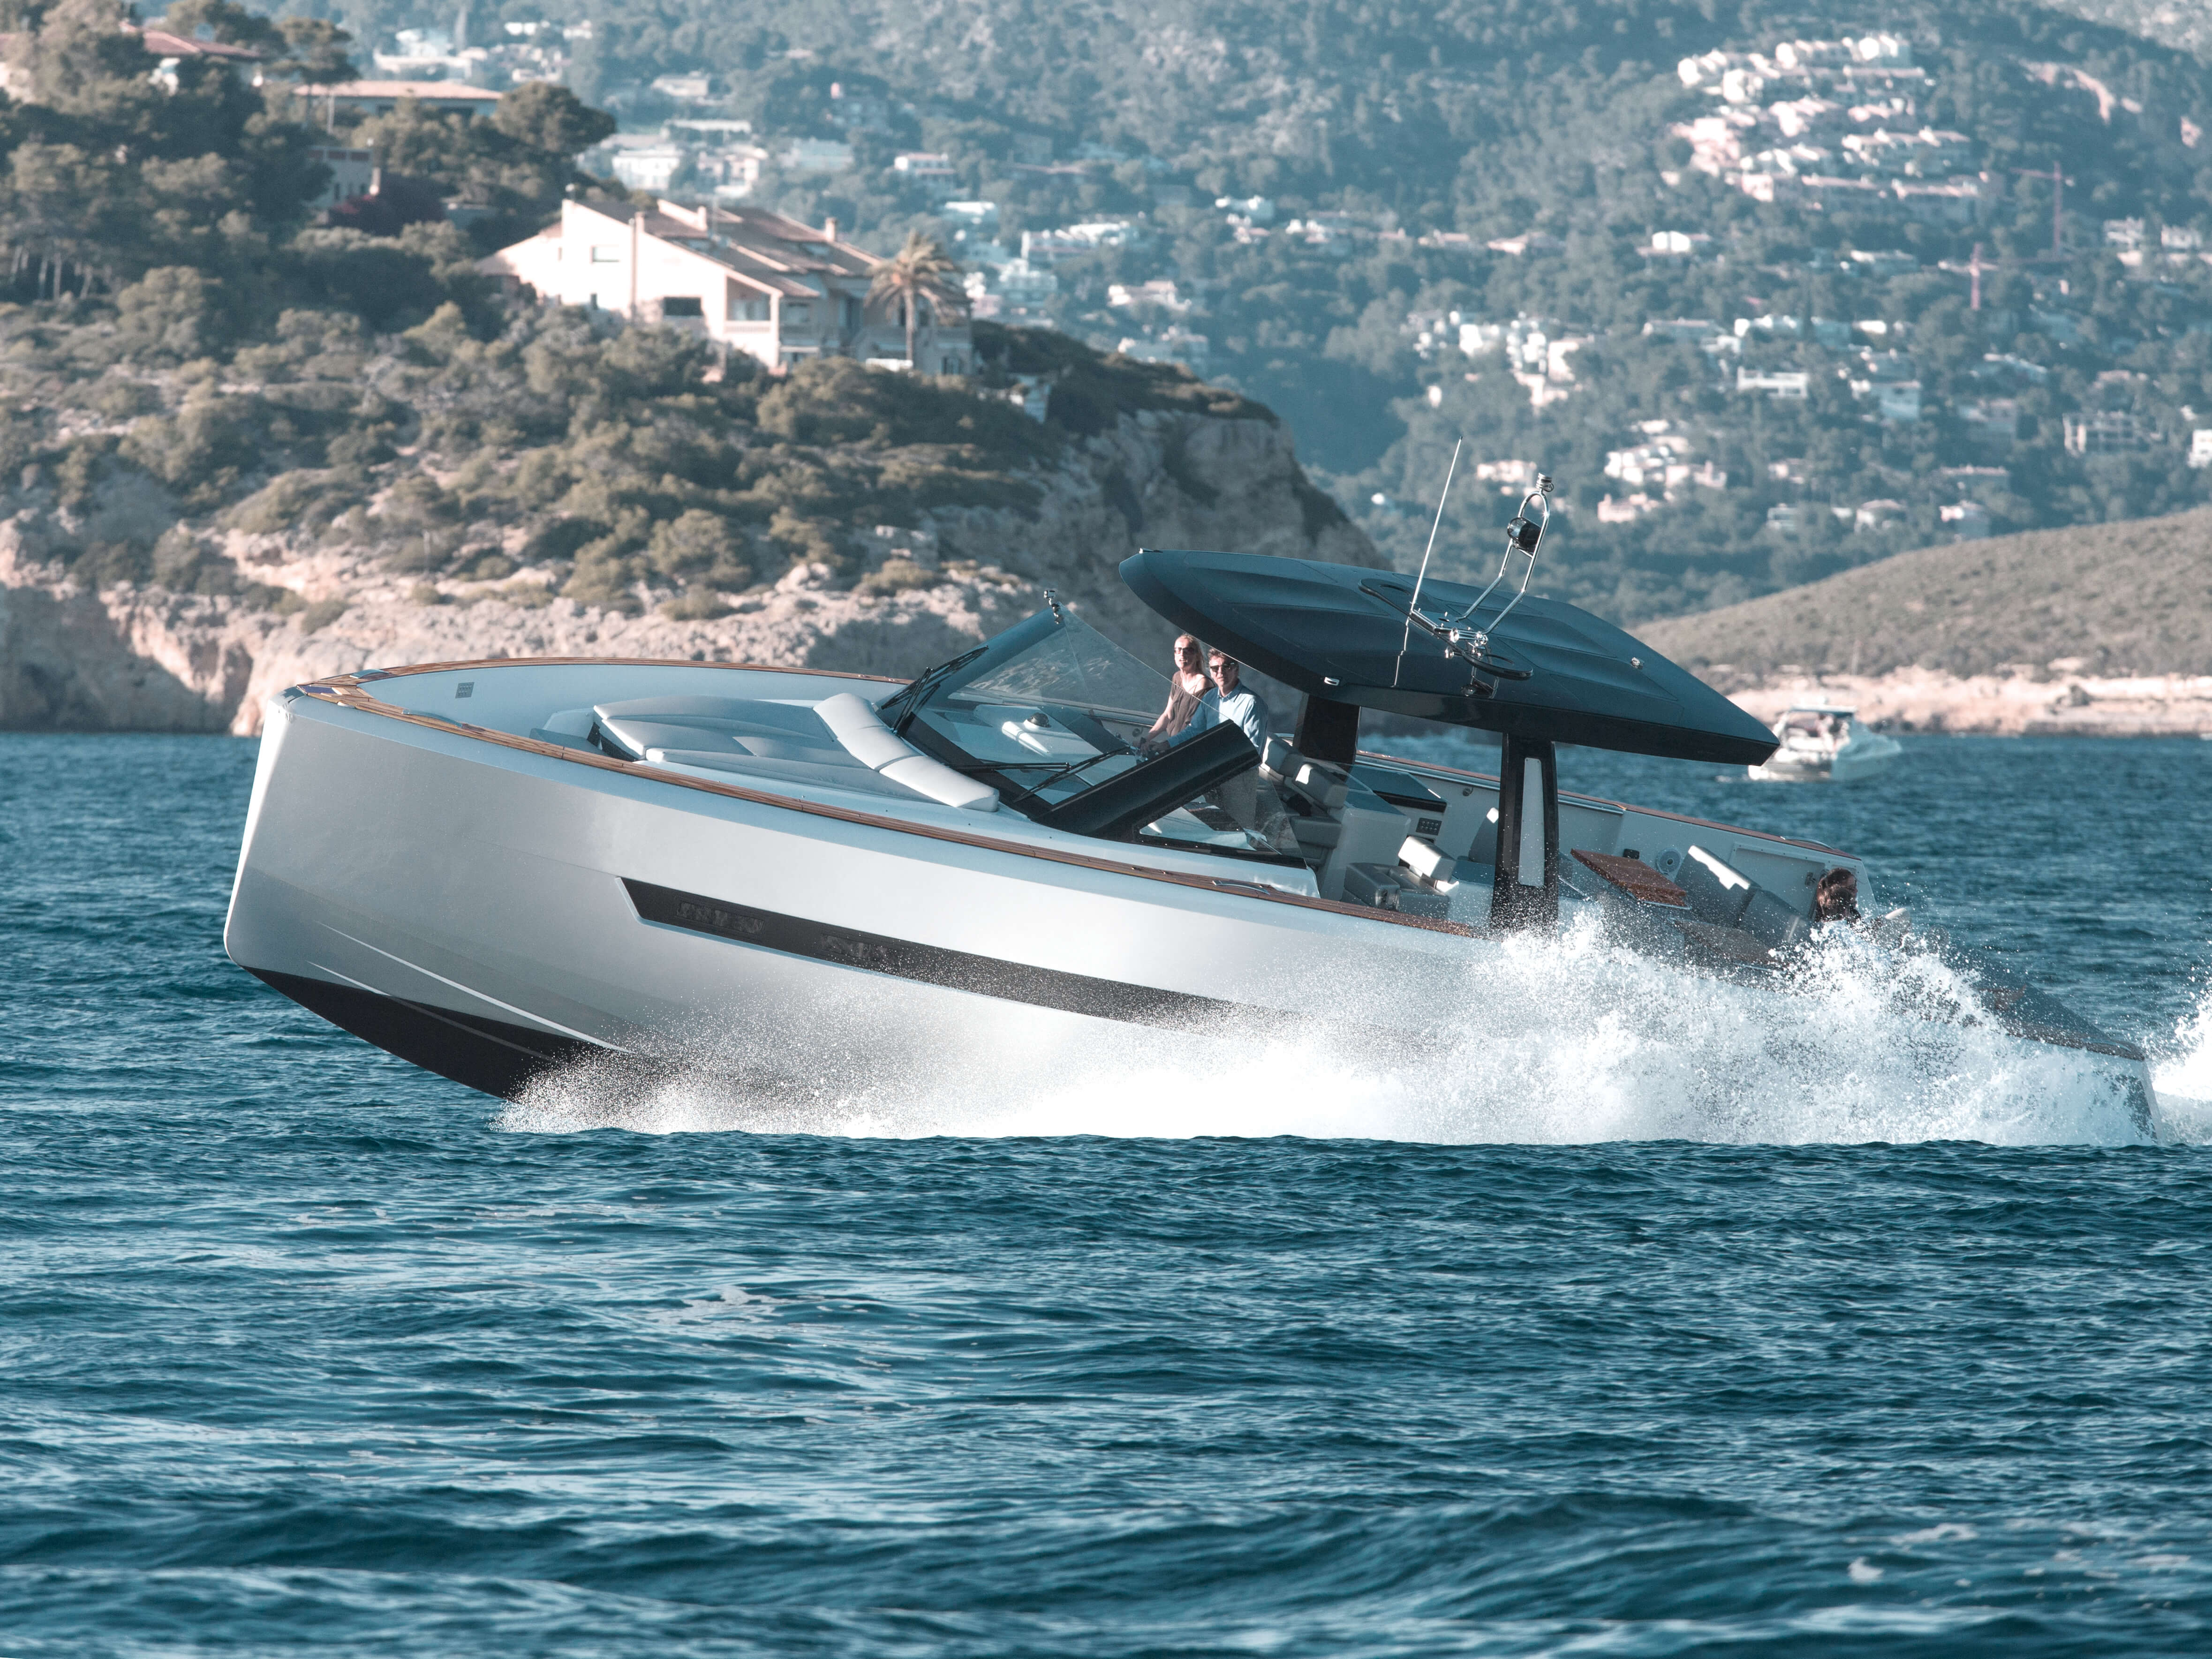 Fjord 48 open Exterior ride | painted hull, T-top with skylights, foredeck sunbed | Fjord